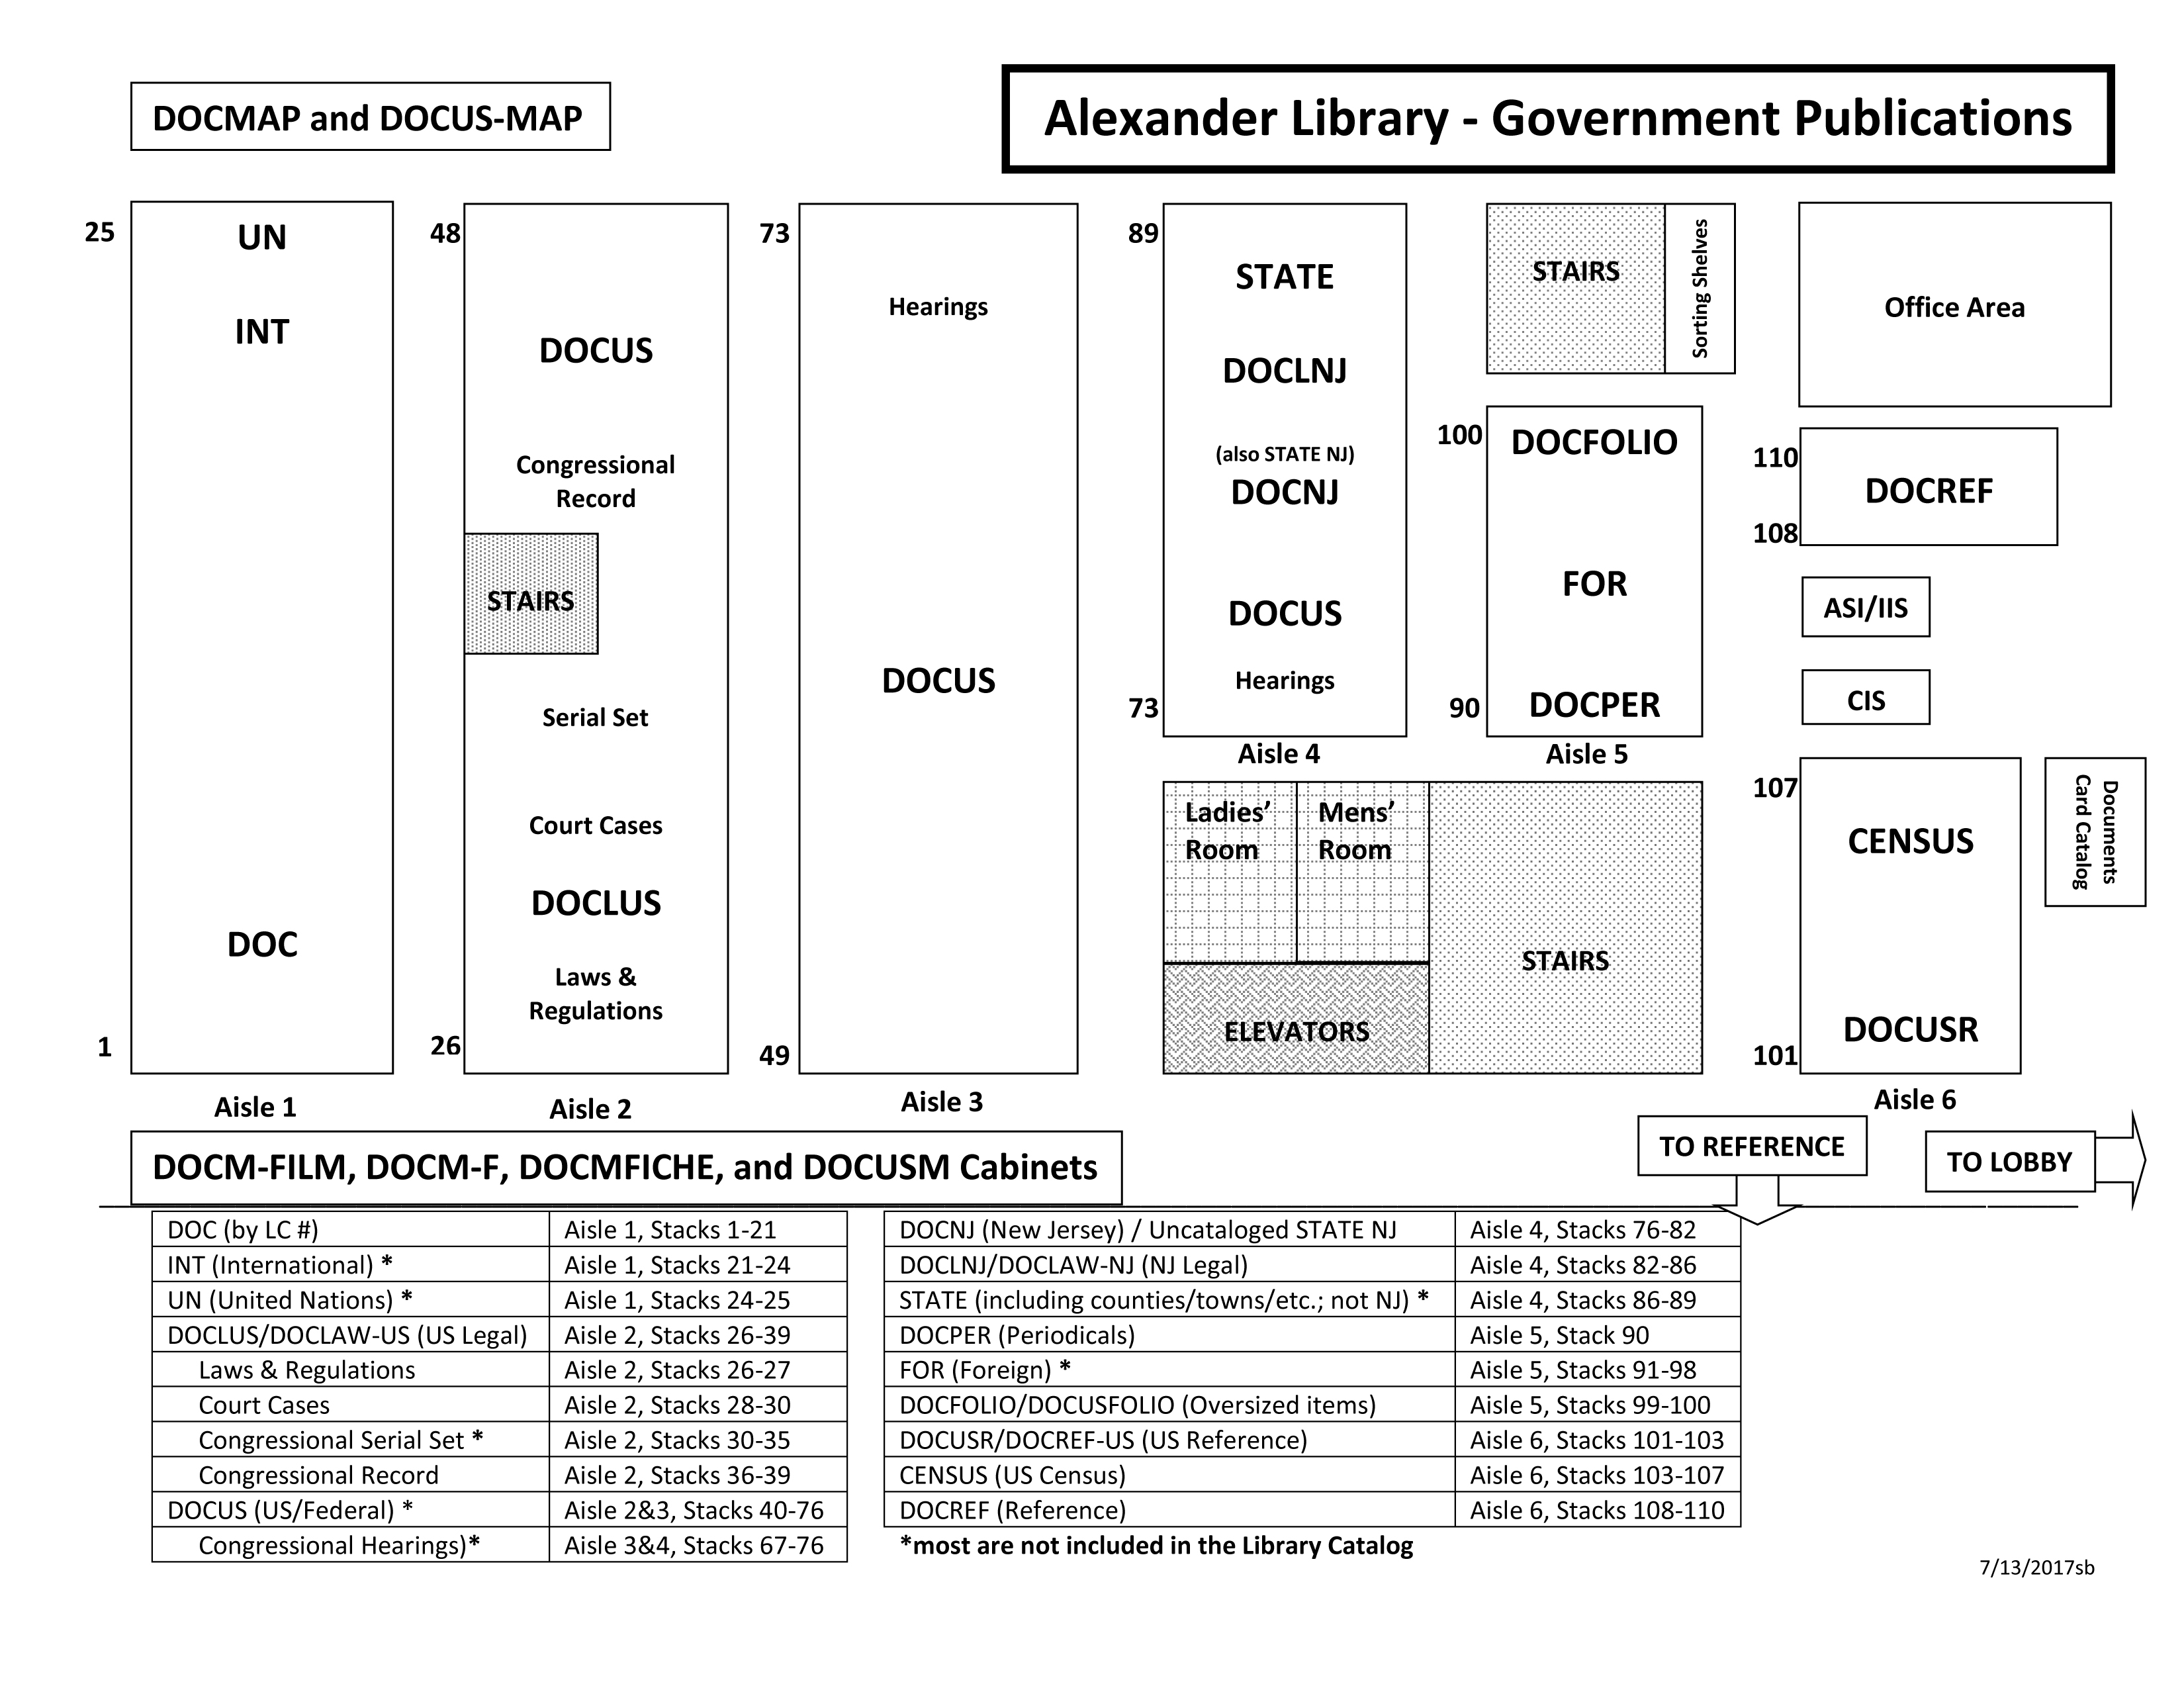 Map of Alexander Library Government Publications